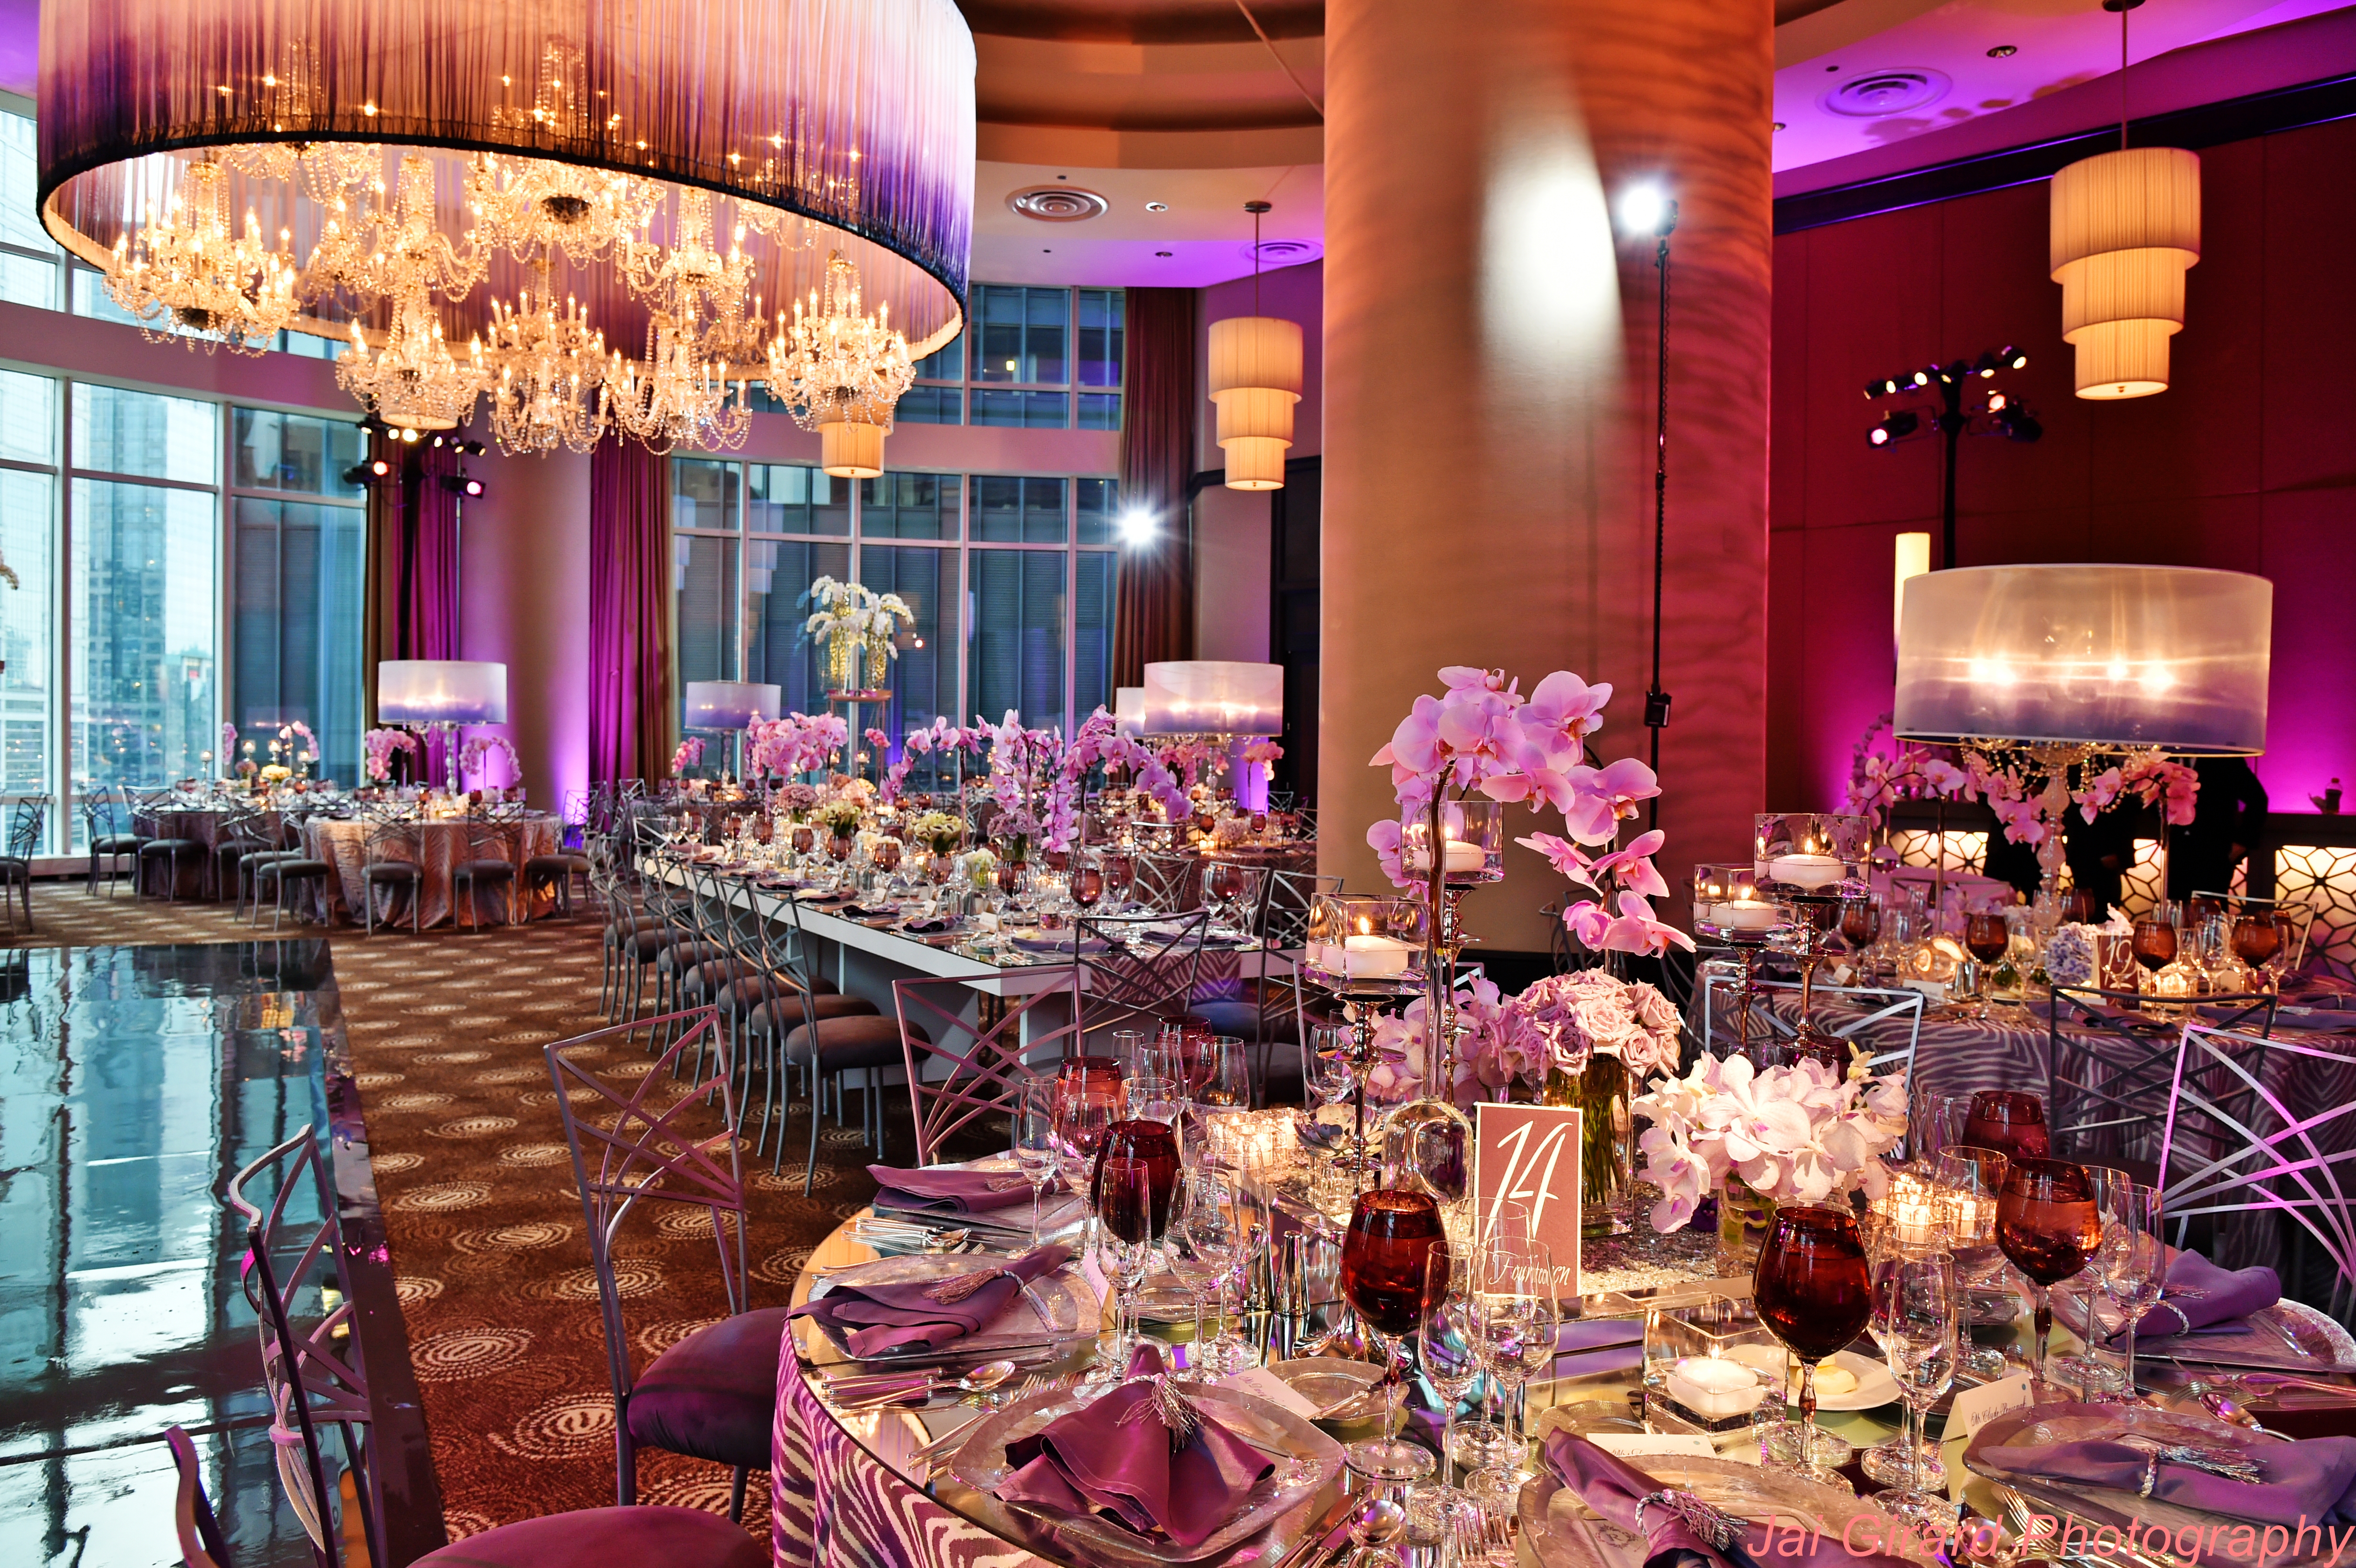 Event at the Trump Hotel Chicago - Jai Girard Photography